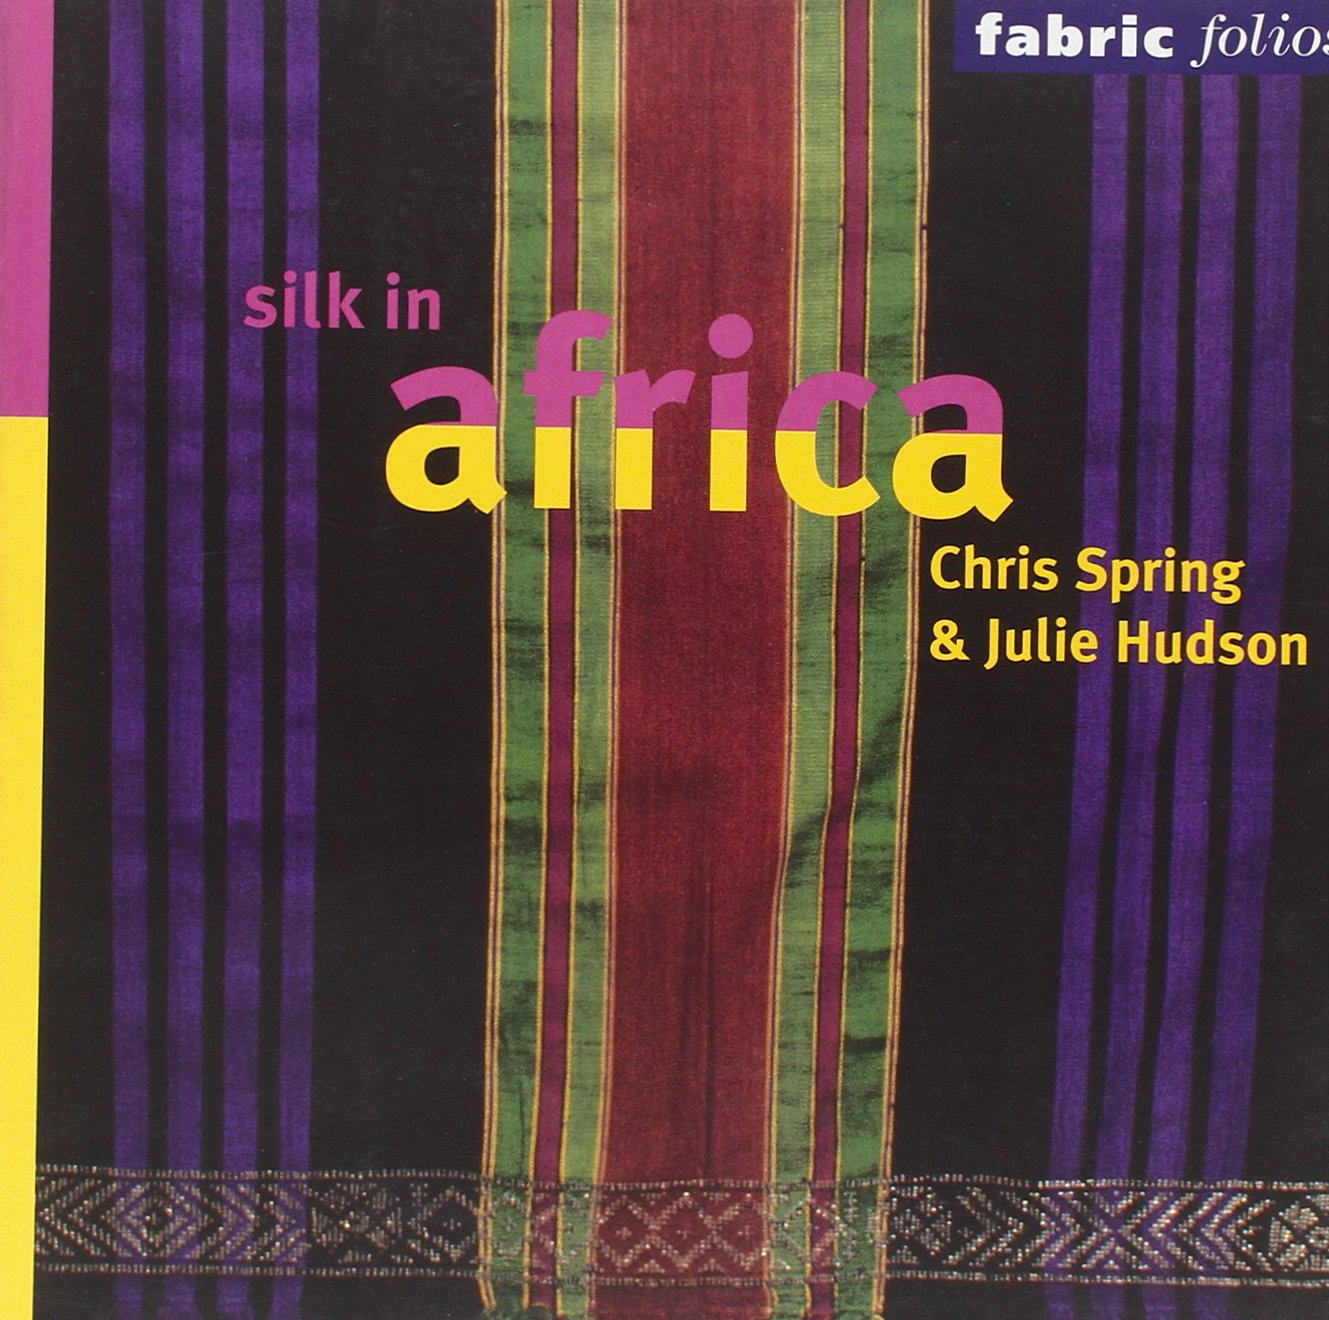 Silk in Africa (Fabric Folios)